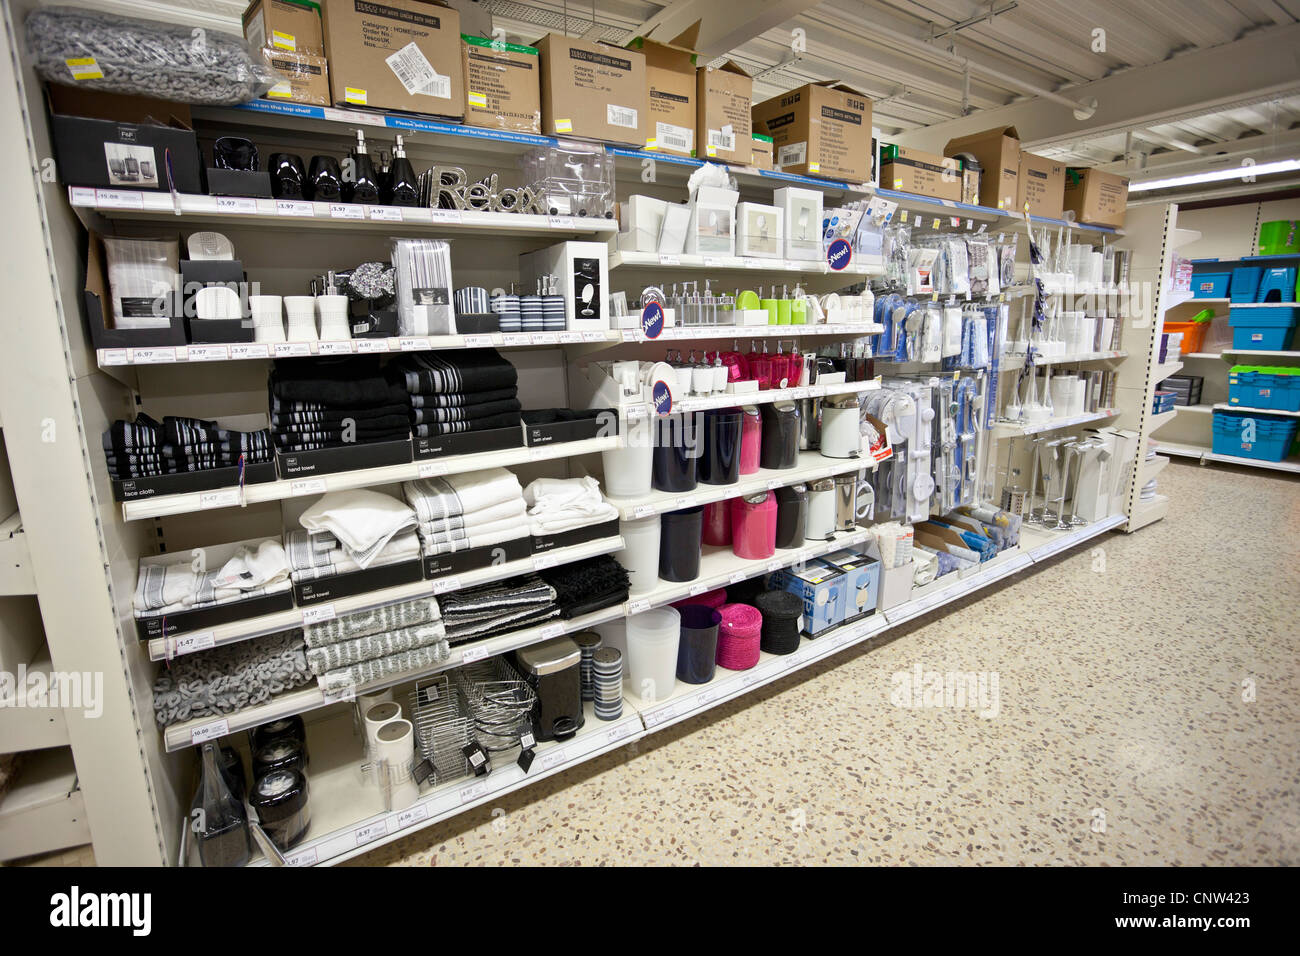 bathroom accessories and toweling shelves of a shop london england uk